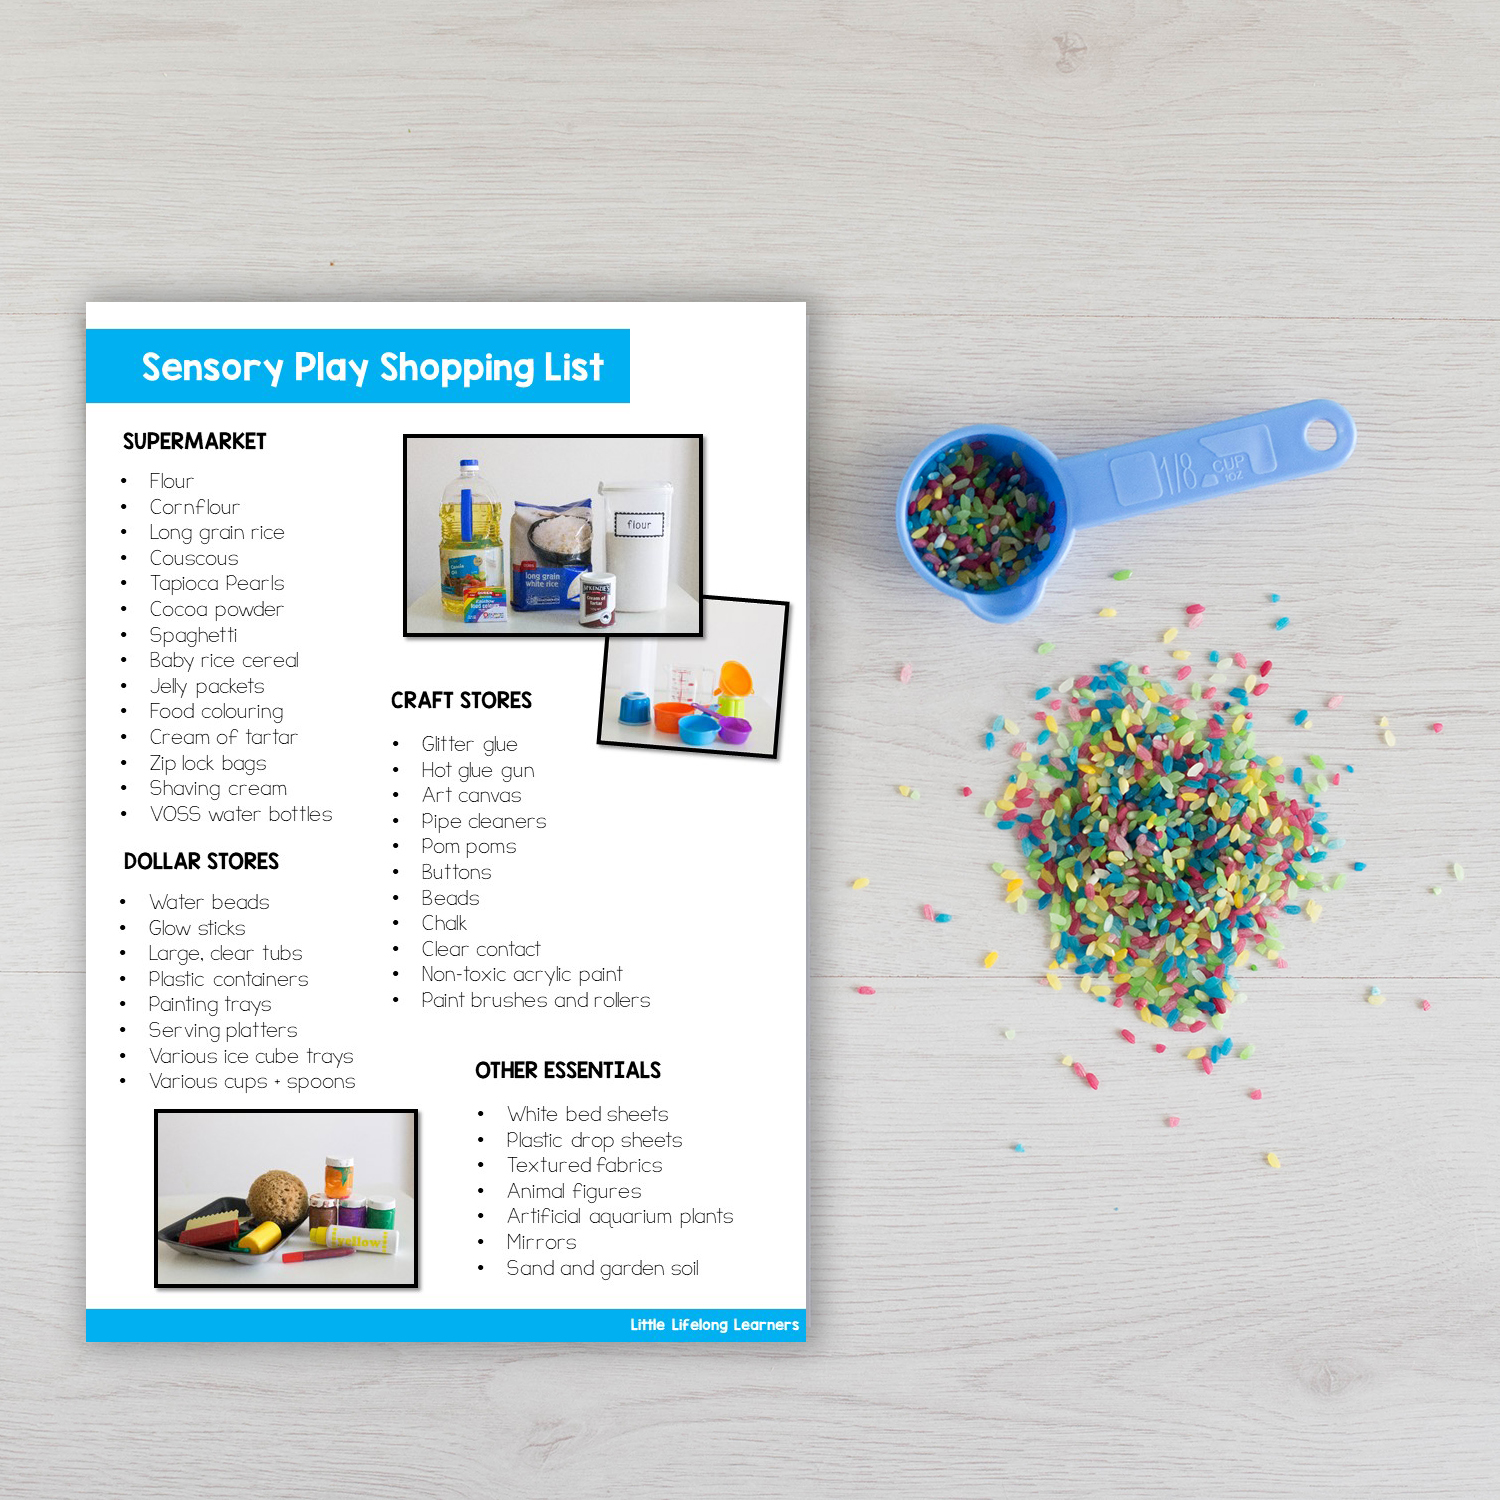 Sensory play shopping list | Supplies for starting sensory play | Sensory play for beginners | play ideas for babies and toddlers |